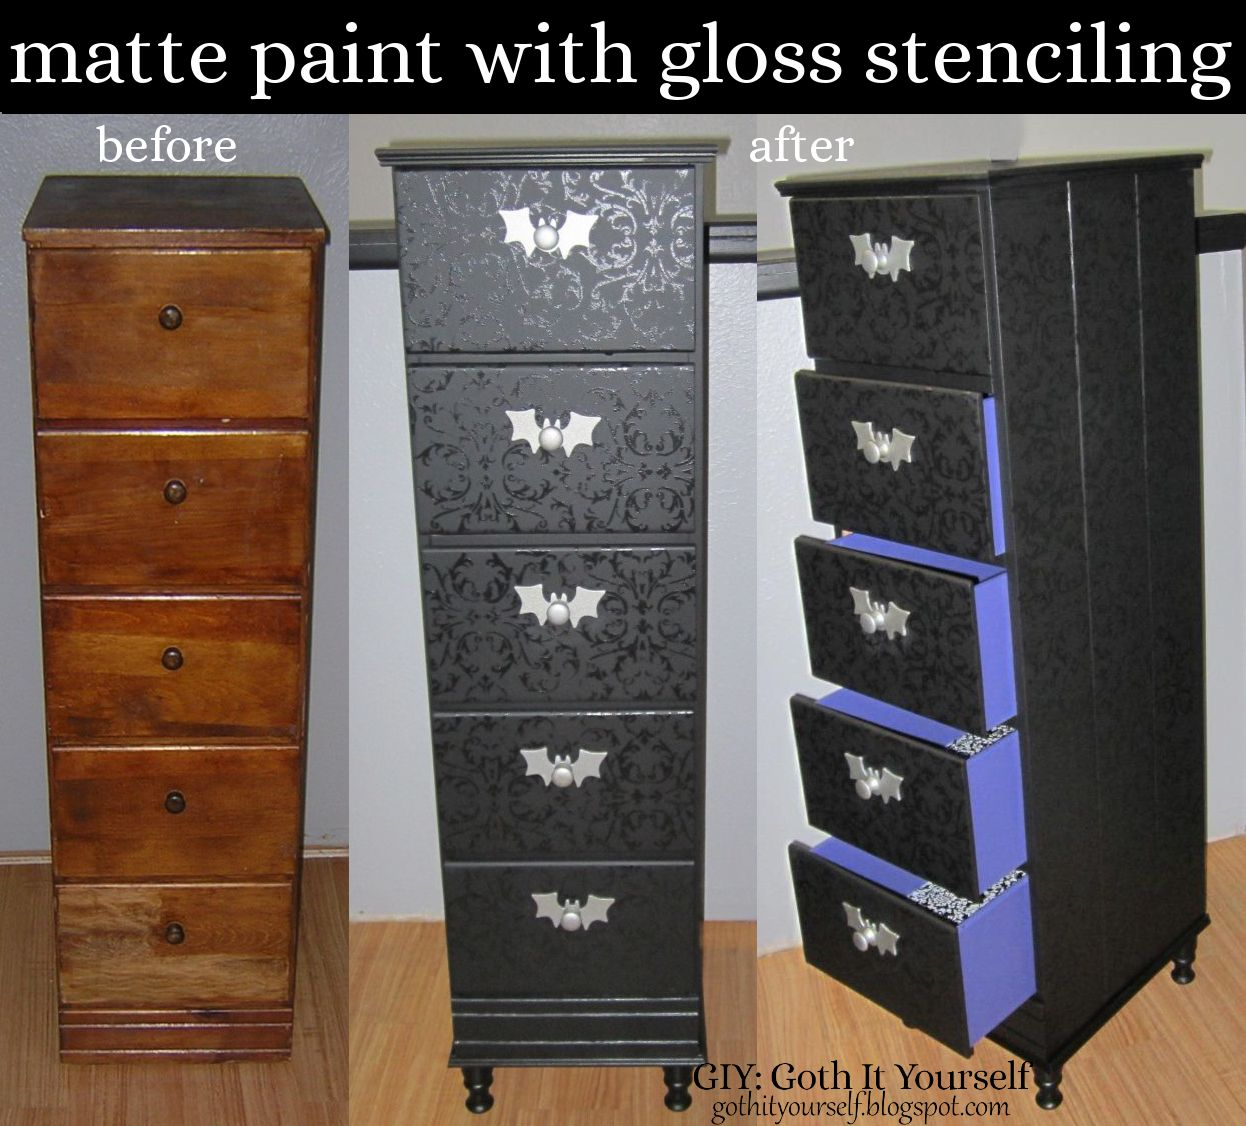 Giy Goth It Yourself Black Matte With Gloss Stenciling